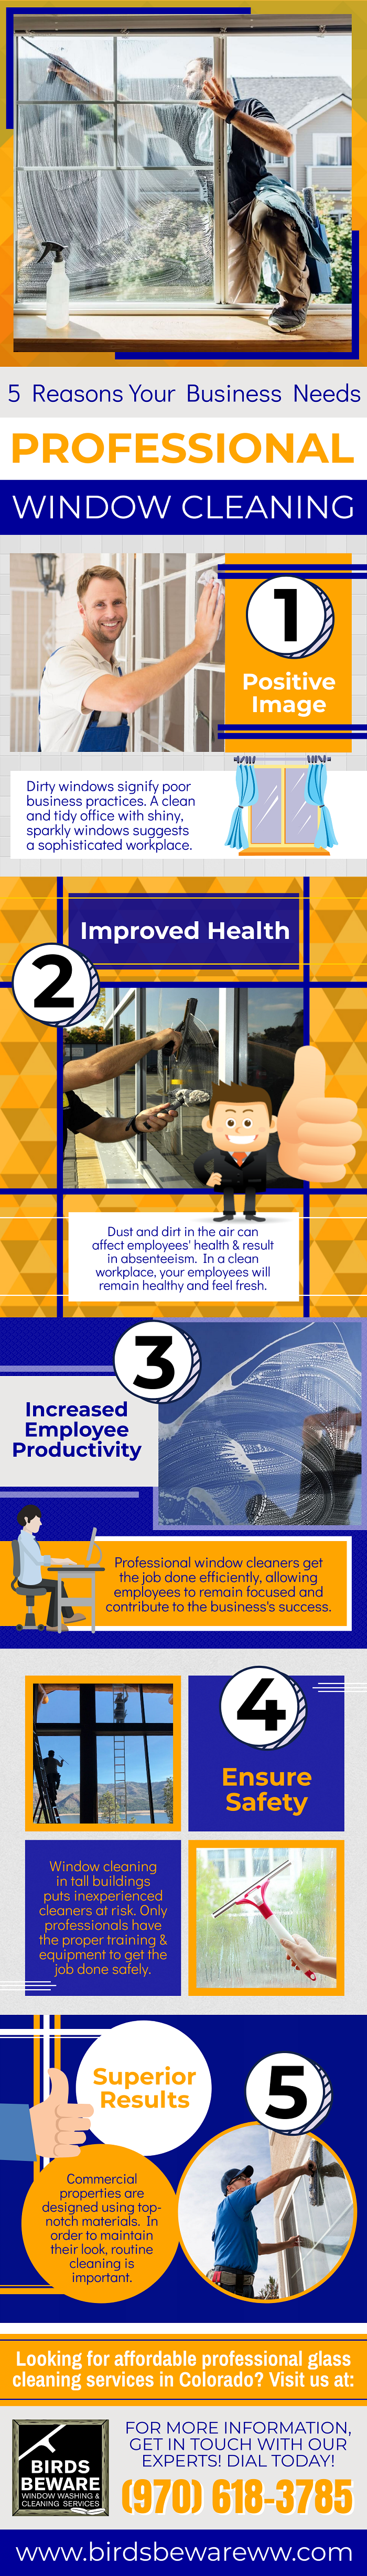 5 Reasons Your Business Needs Professional Window Cleaning